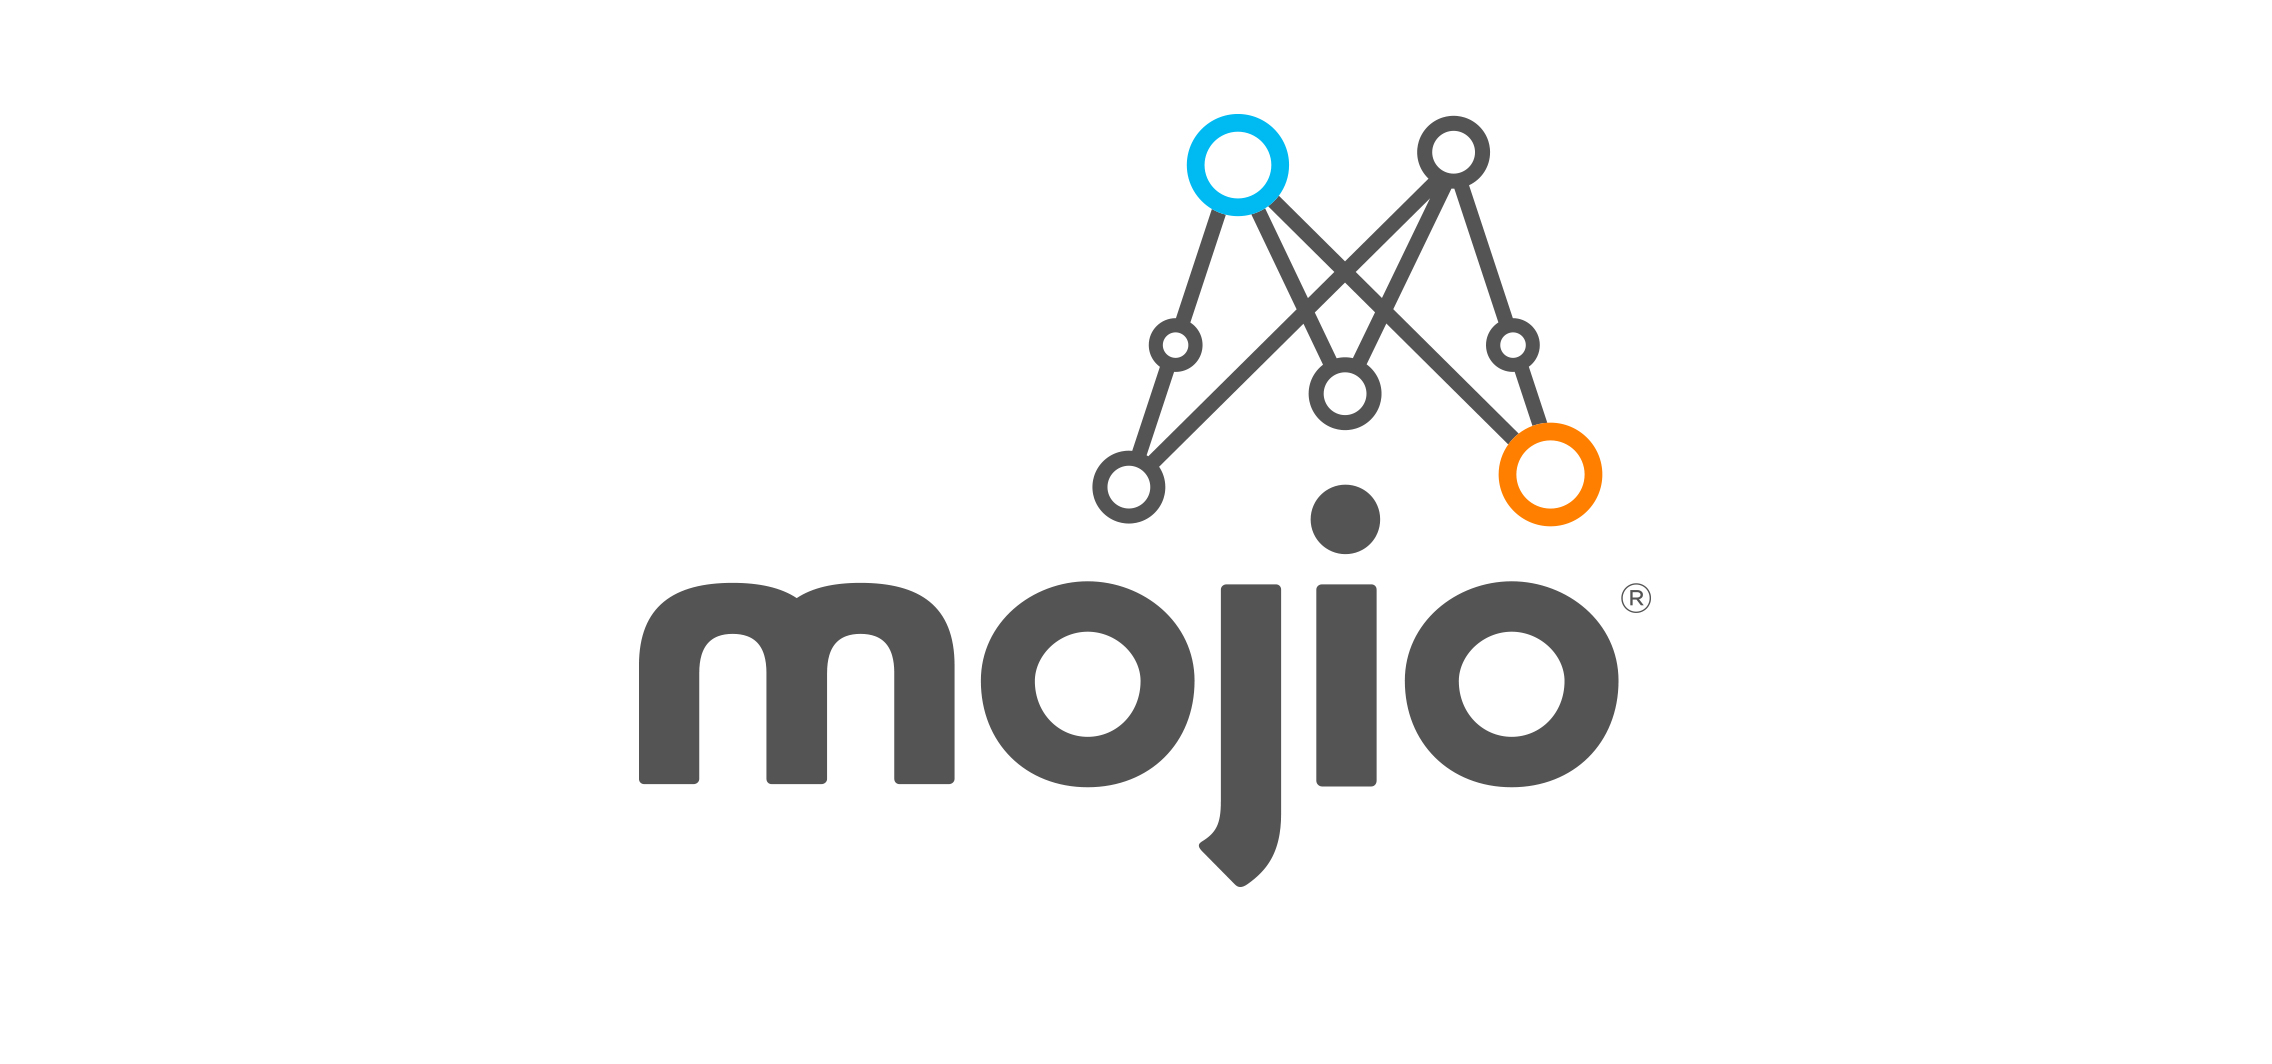 Mojio_logo_revised.jpg